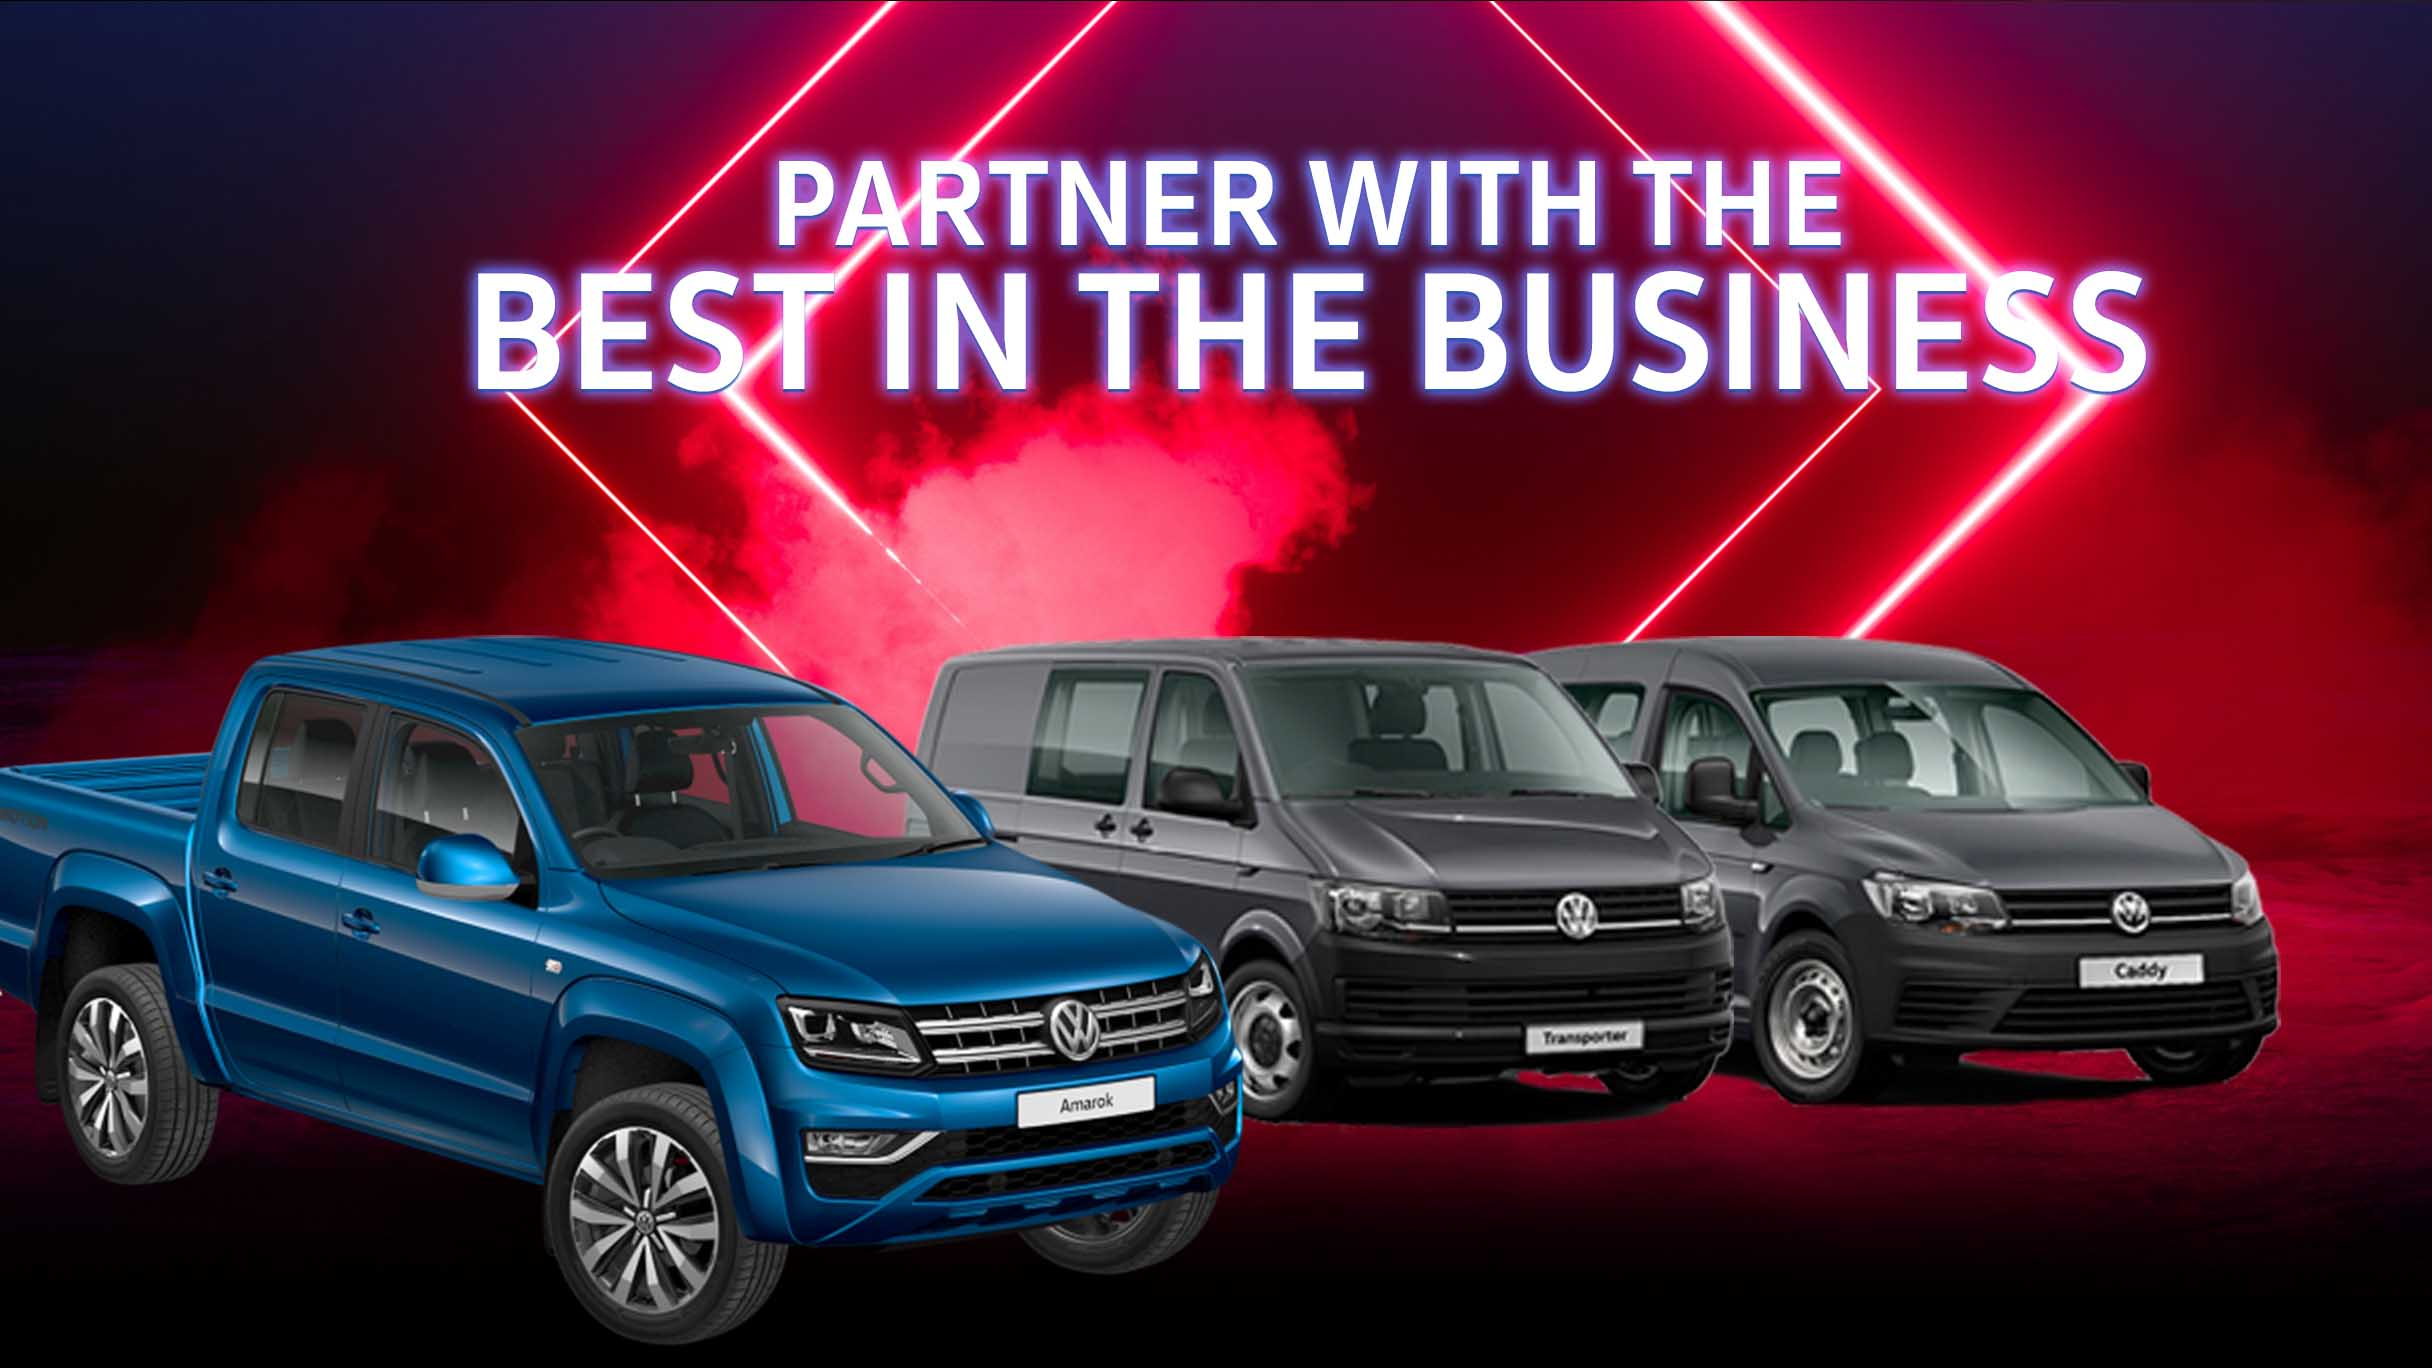 Get the best Volkswagen for your business at Barons Durban